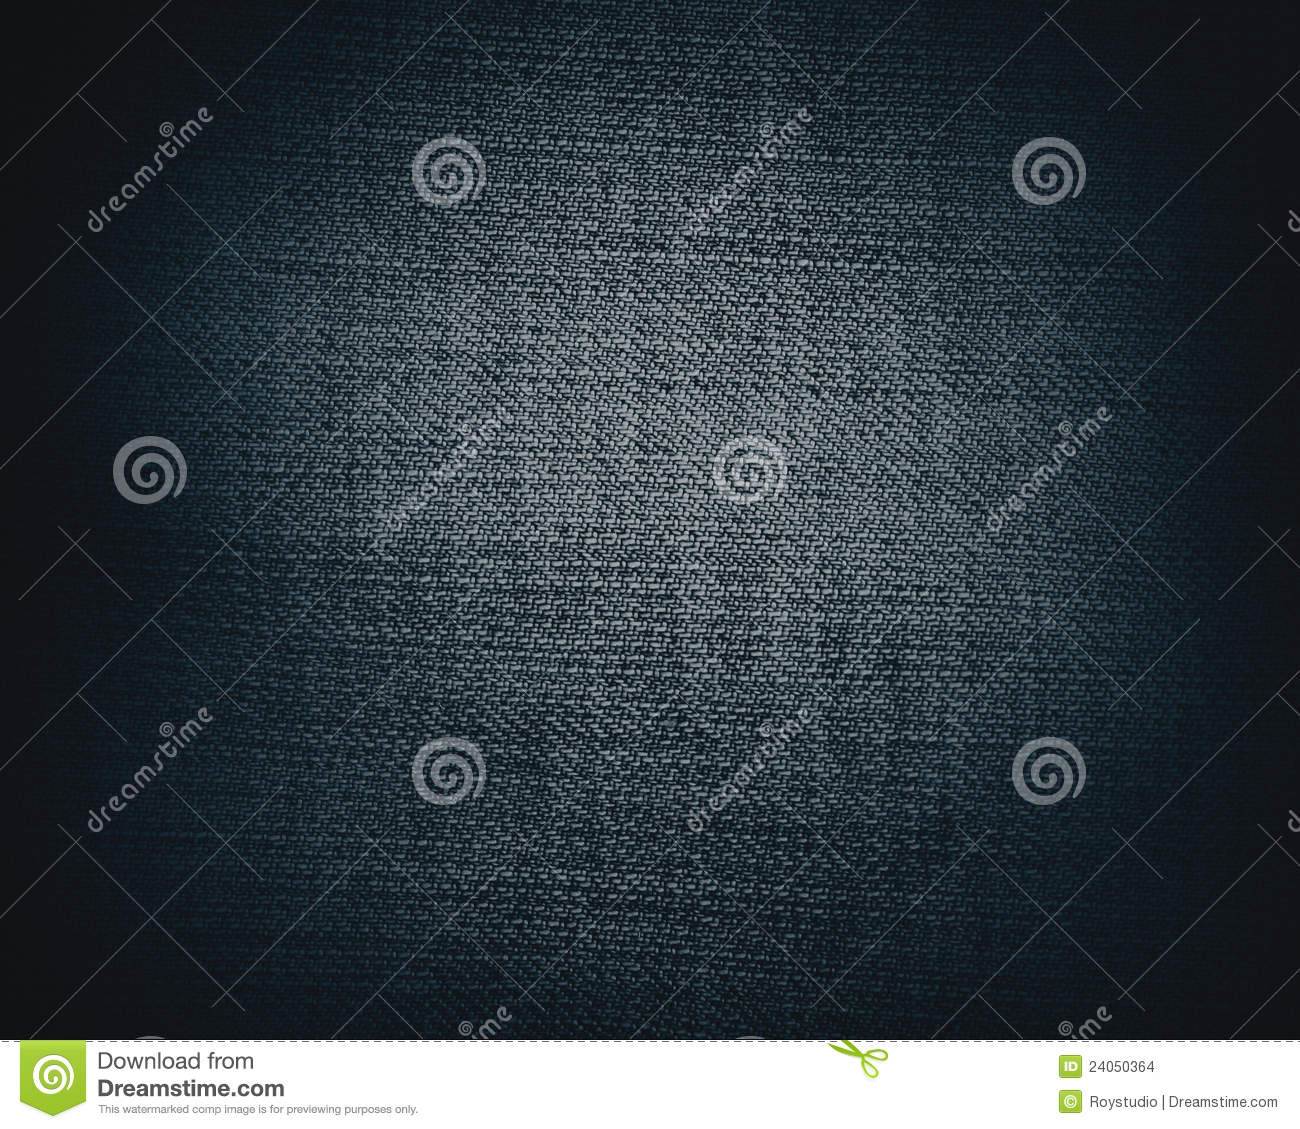 Black canvas texture or background